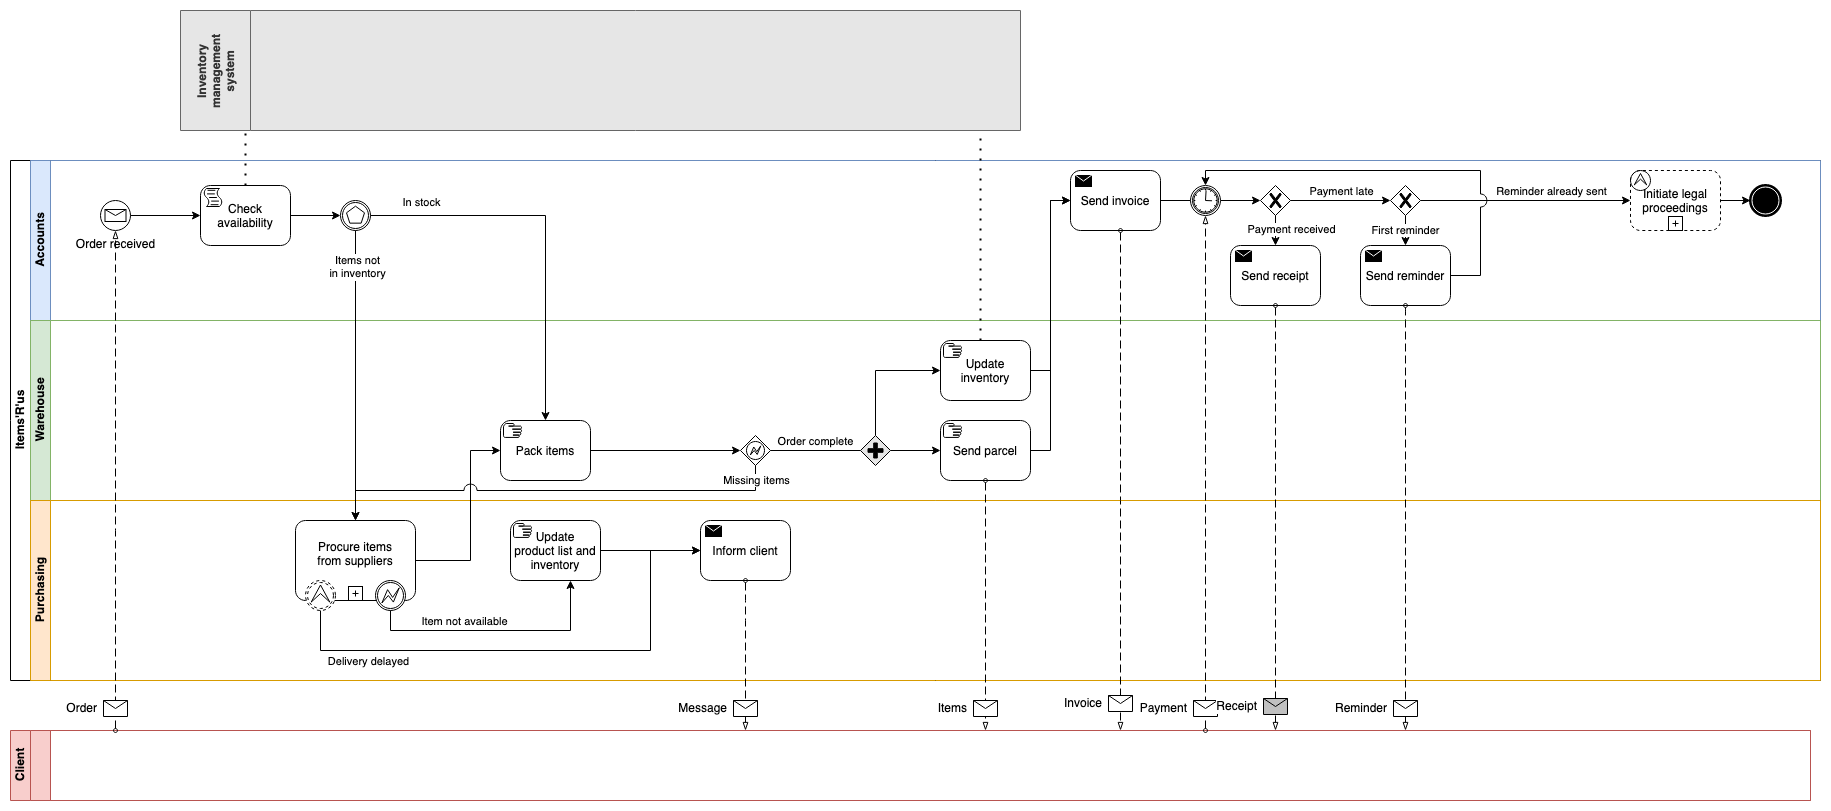 An example BPMN diagram that details the steps involved in processing an order